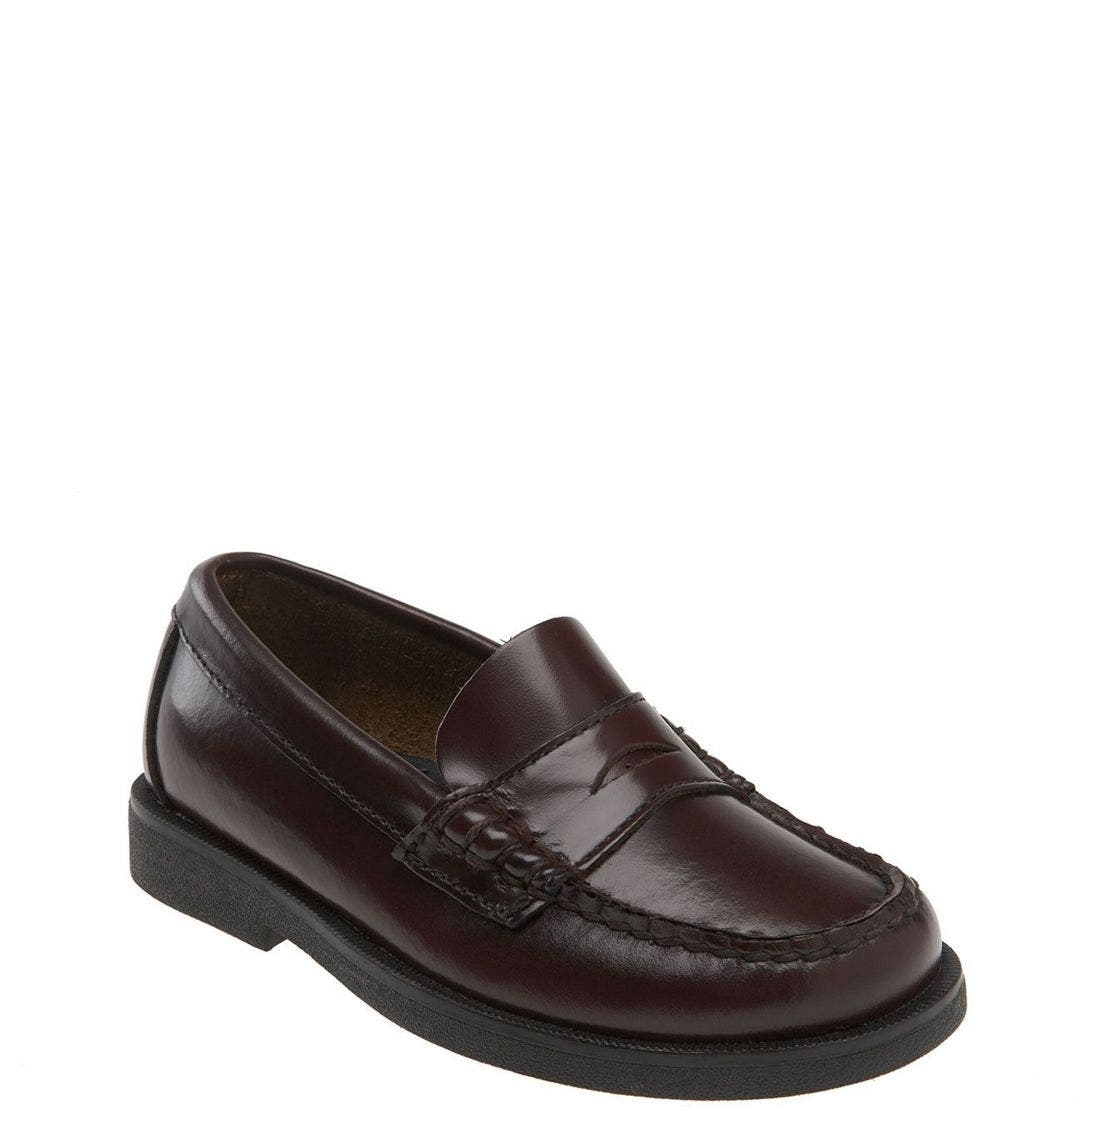 Alternate Image 1 Selected - Sperry Kids 'Colton' Loafer (Little Kid & Big Kid)